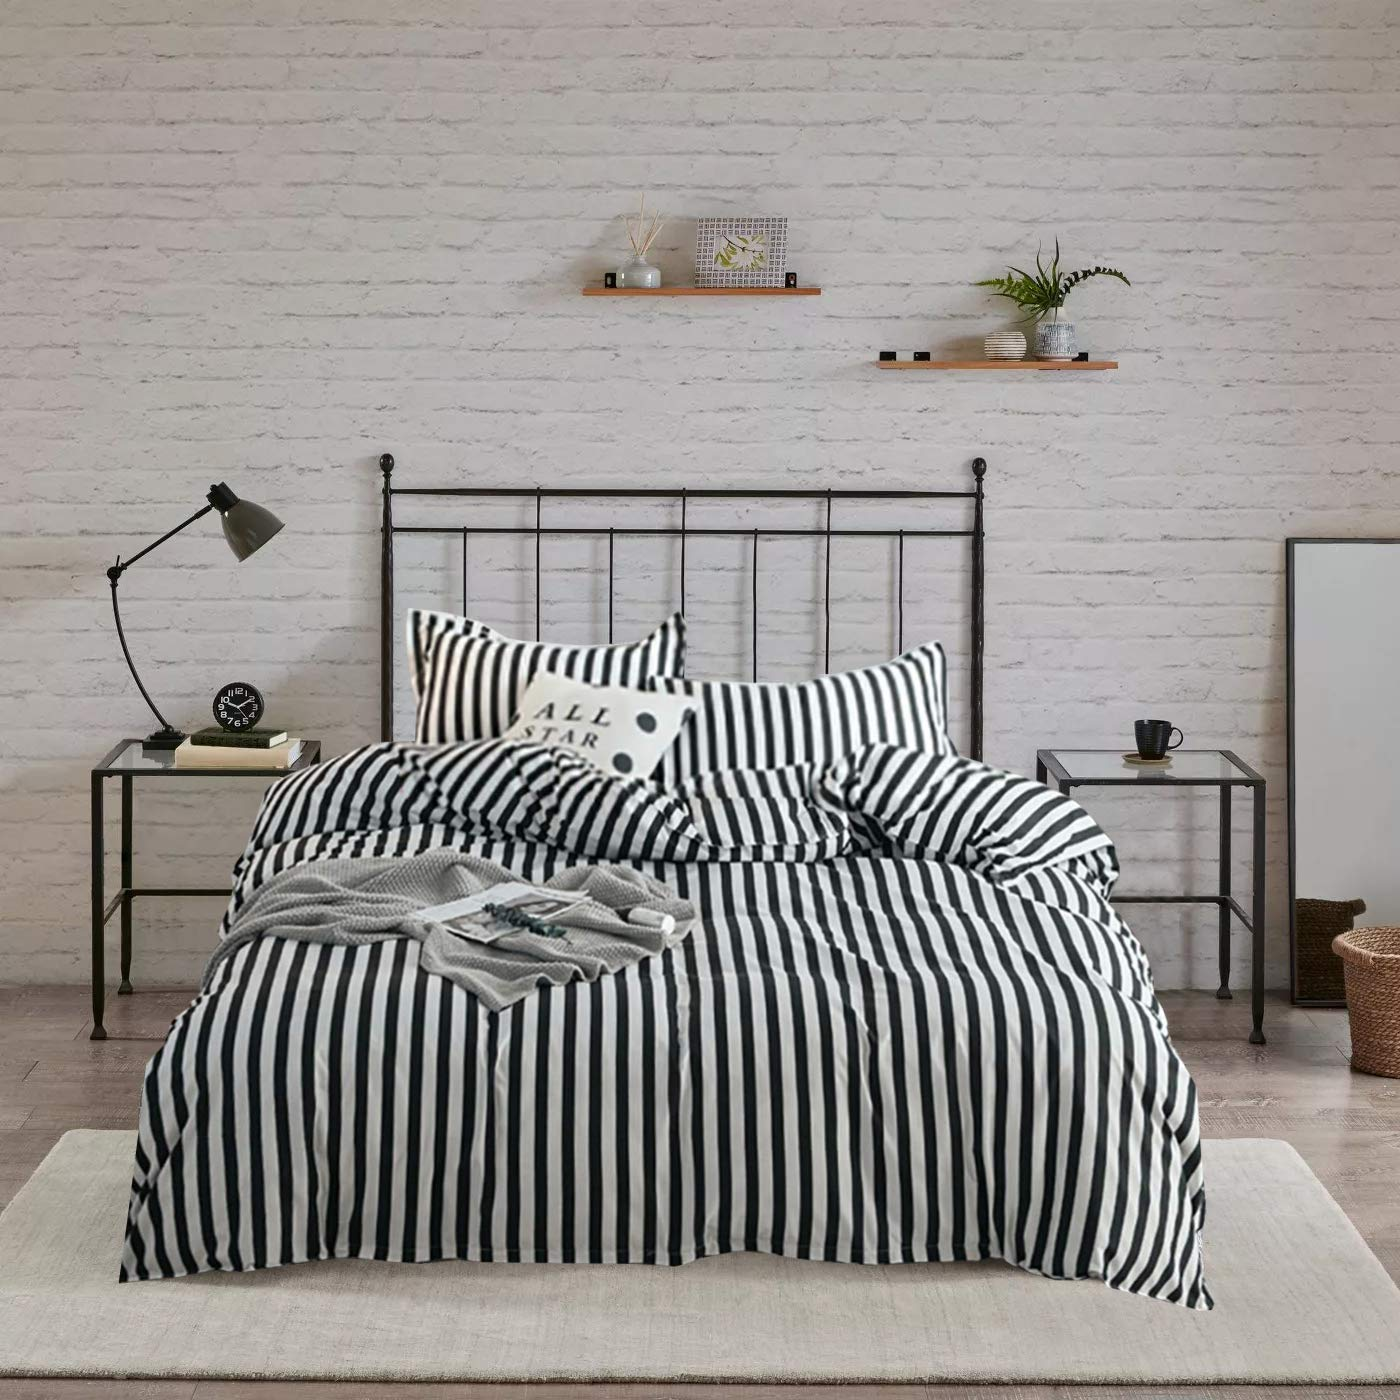 Wellboo Black and White Striped Bedding Sets Twin Cotton Covers Teens Women Men Vertical Stripe Bedding Sets Black Striped Quilt Covers Soft Hotel Luxury Duvet Covers Breathable Soft Health No Insert